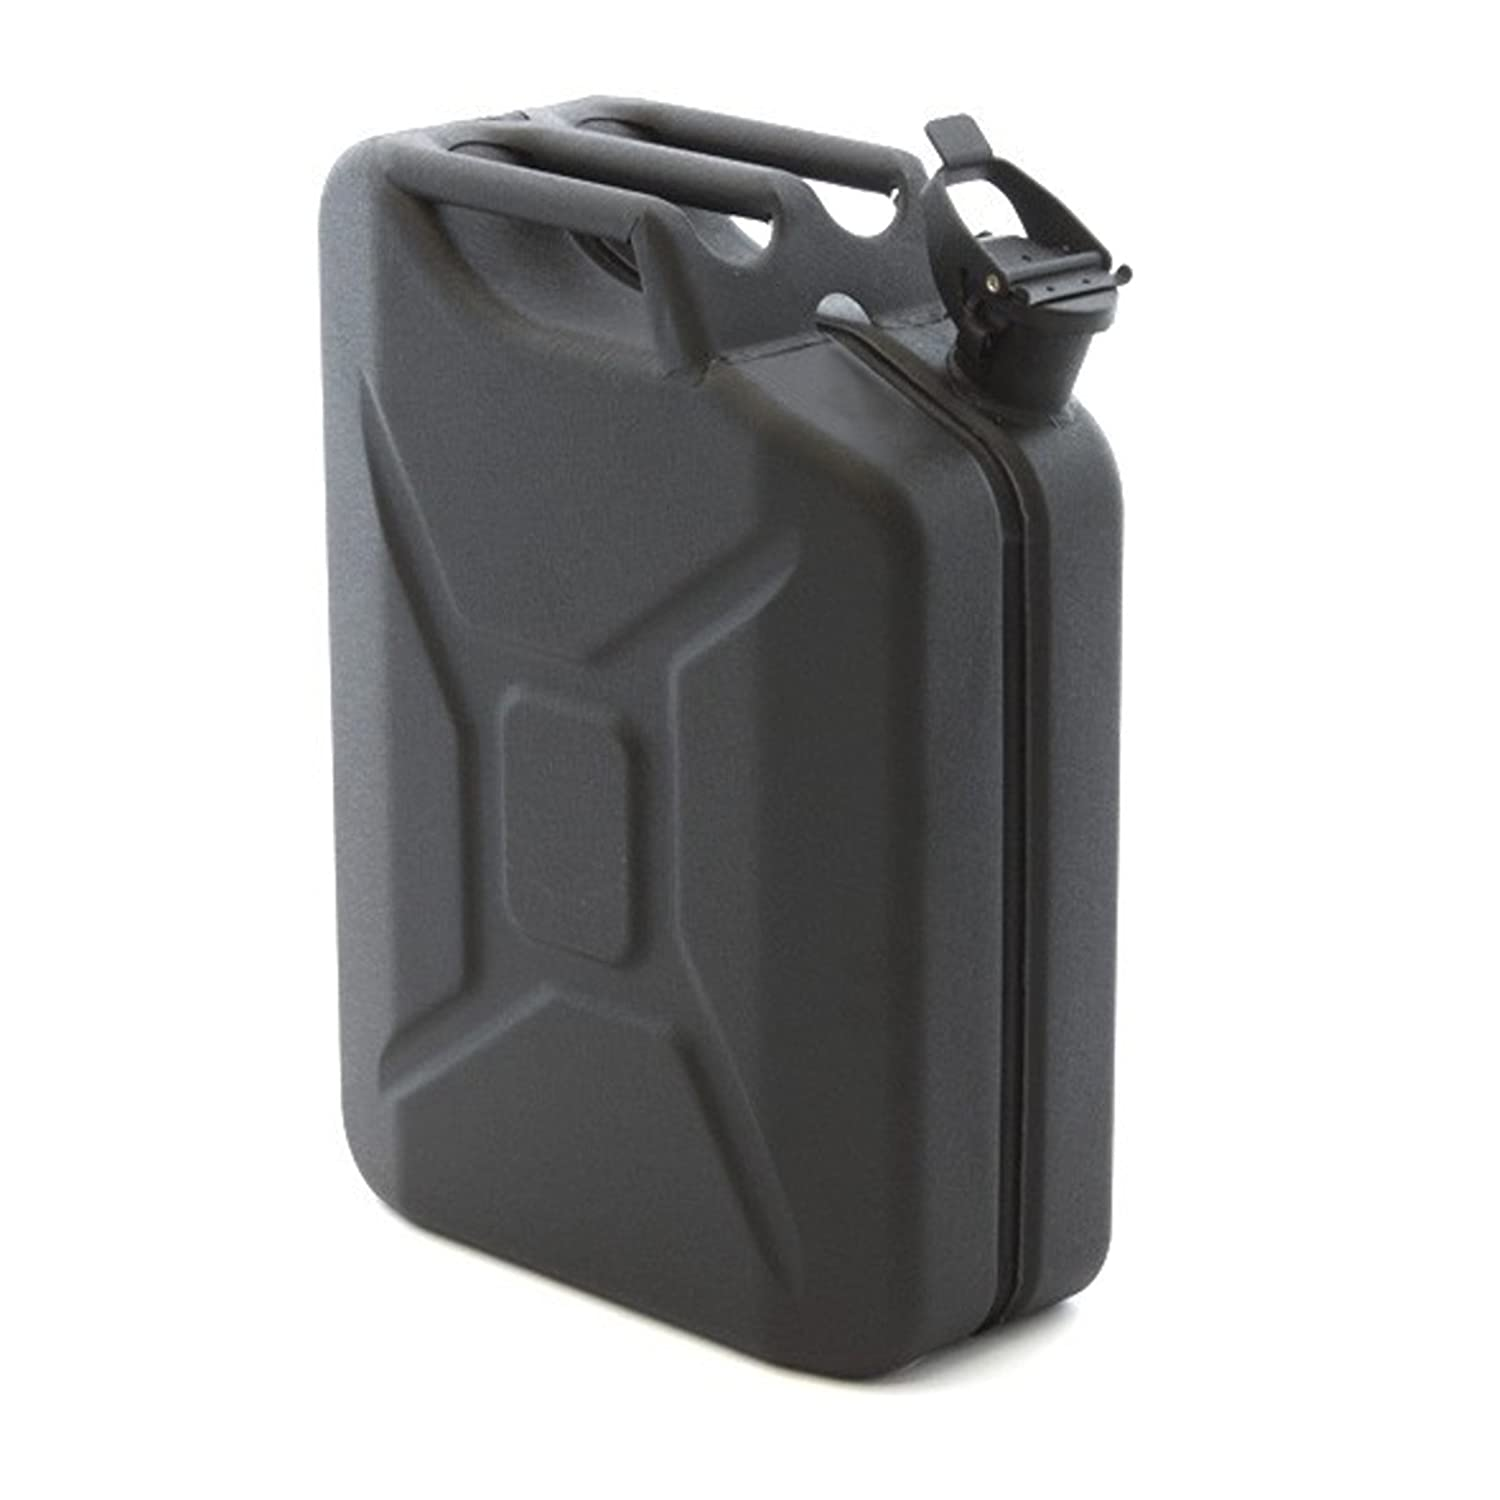 20 Litre Matt Black Hammered Finish Jerry Can for Fuel Petrol Diesel etc ASC